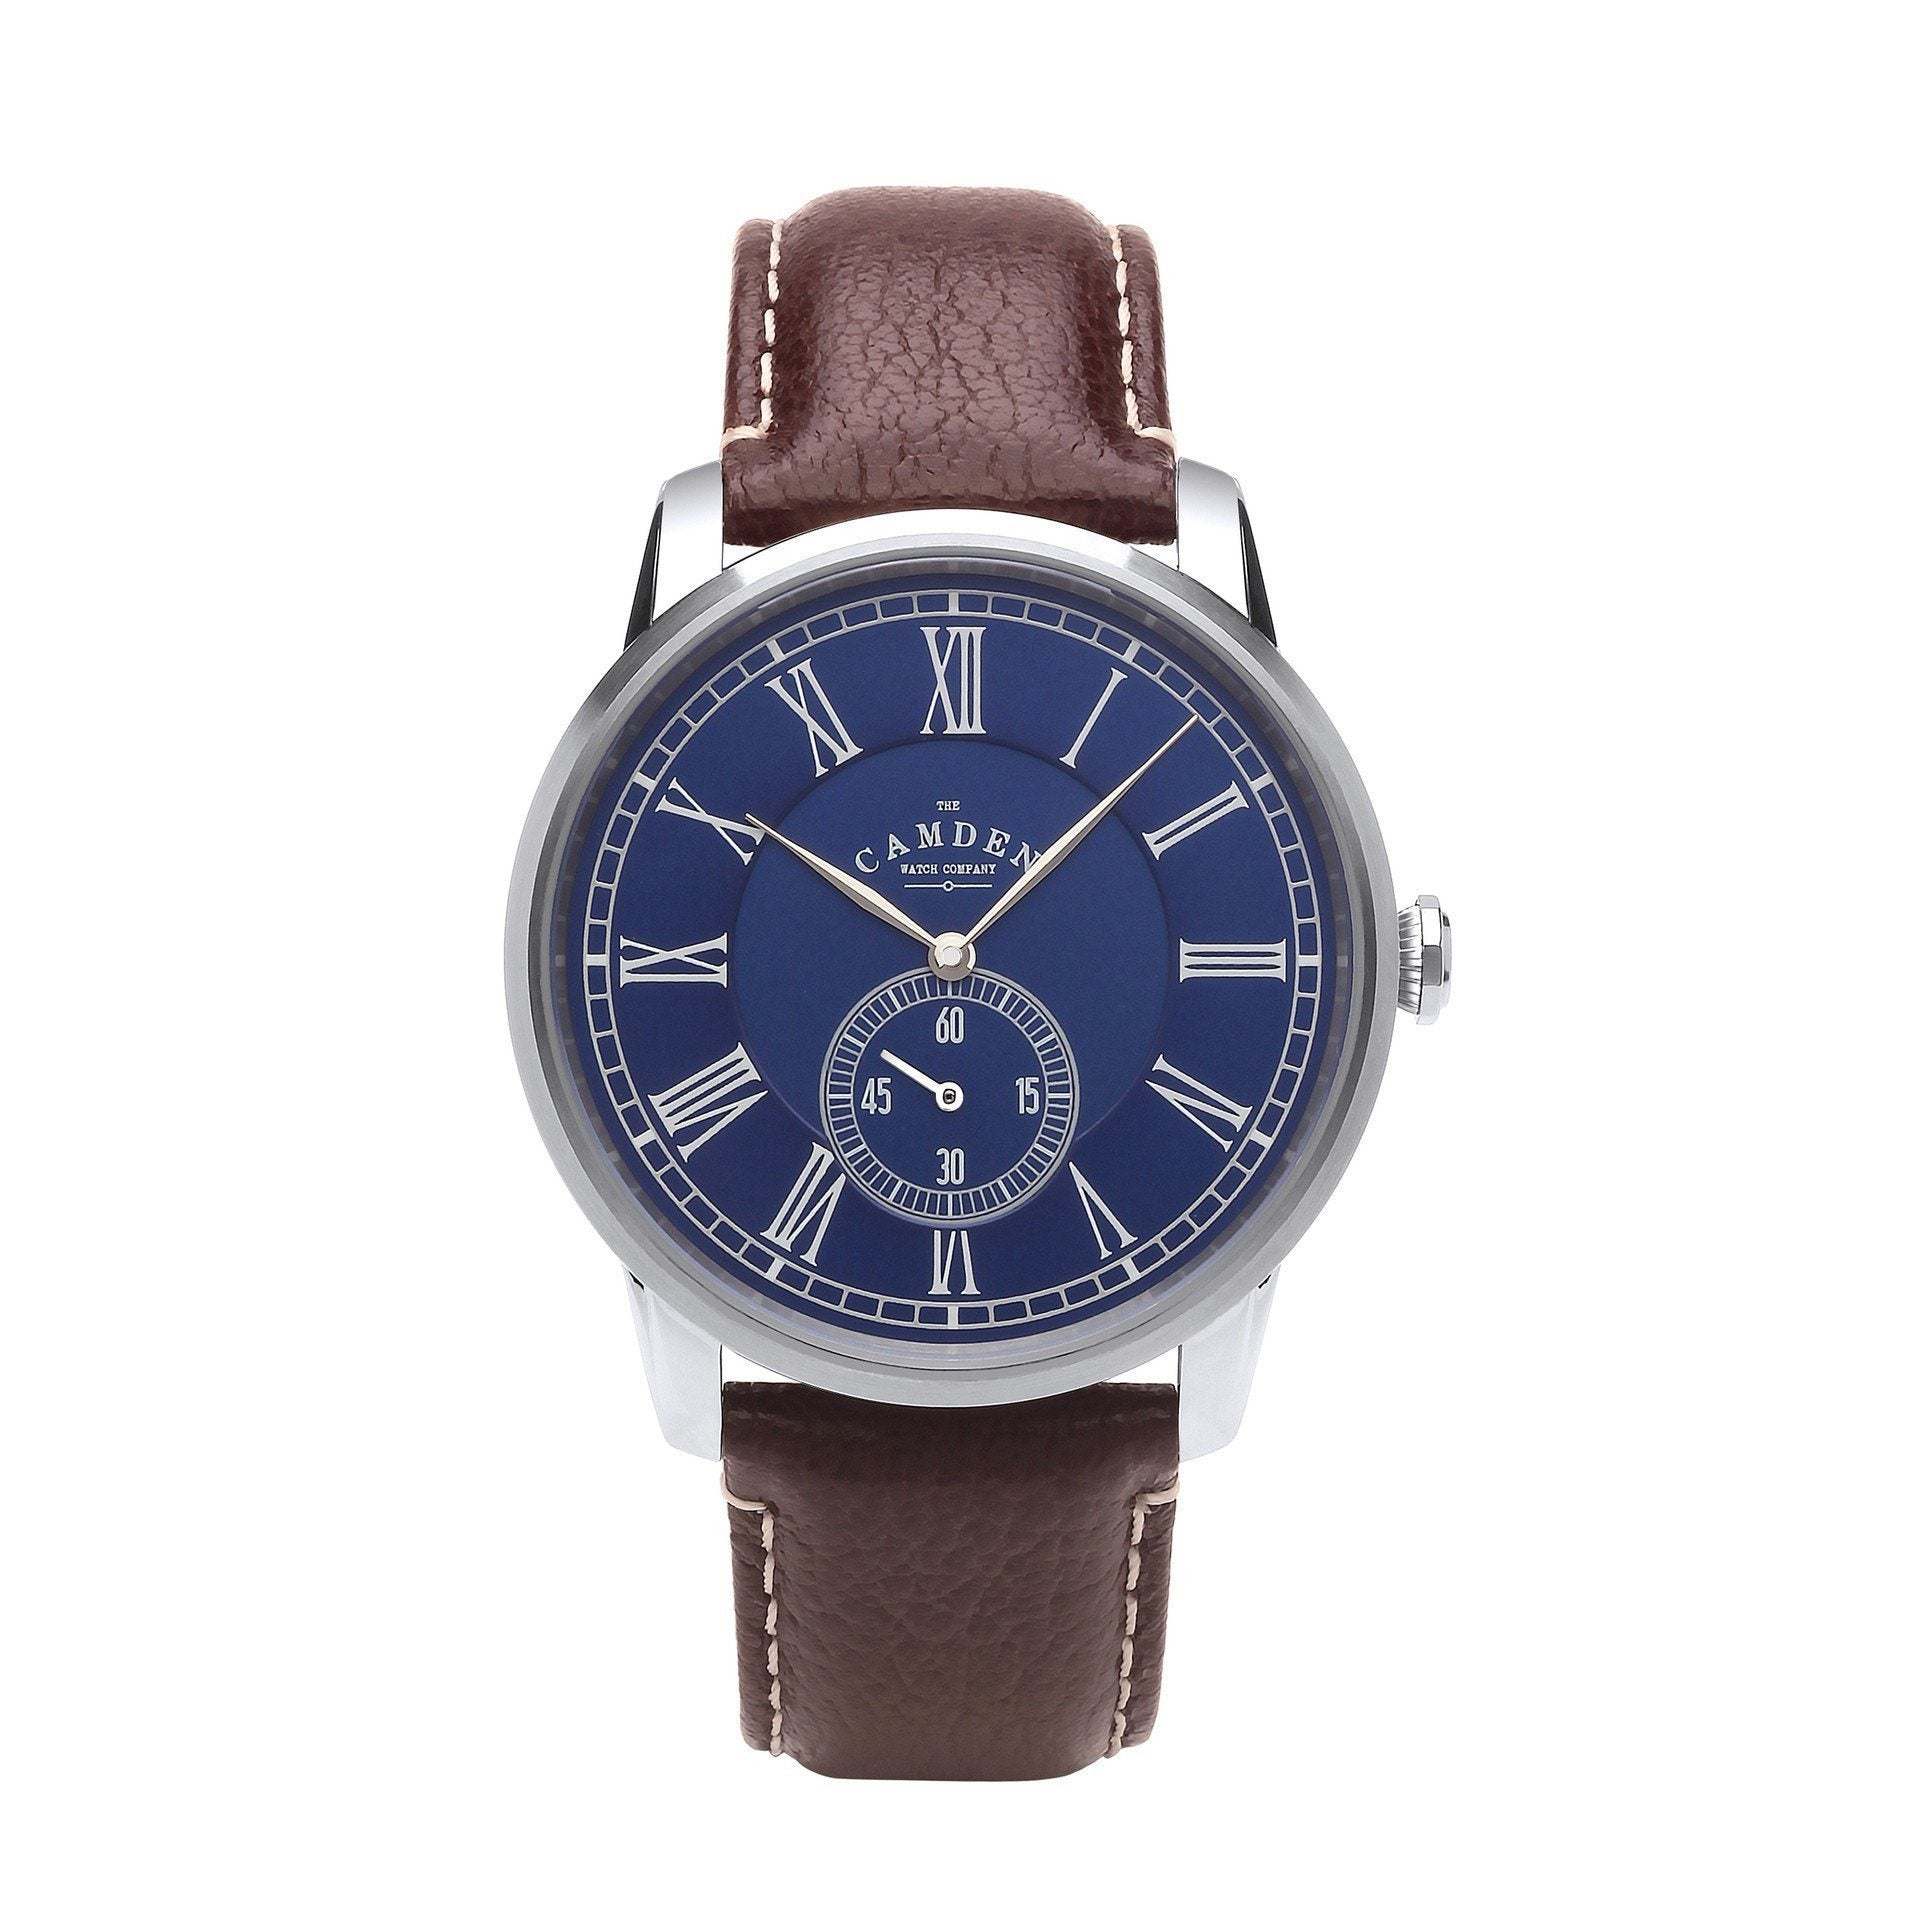 f2fe2a4f4 No.29 Gents British Watch Brown strap And Blue Dial. The Camden Watch  Company ...